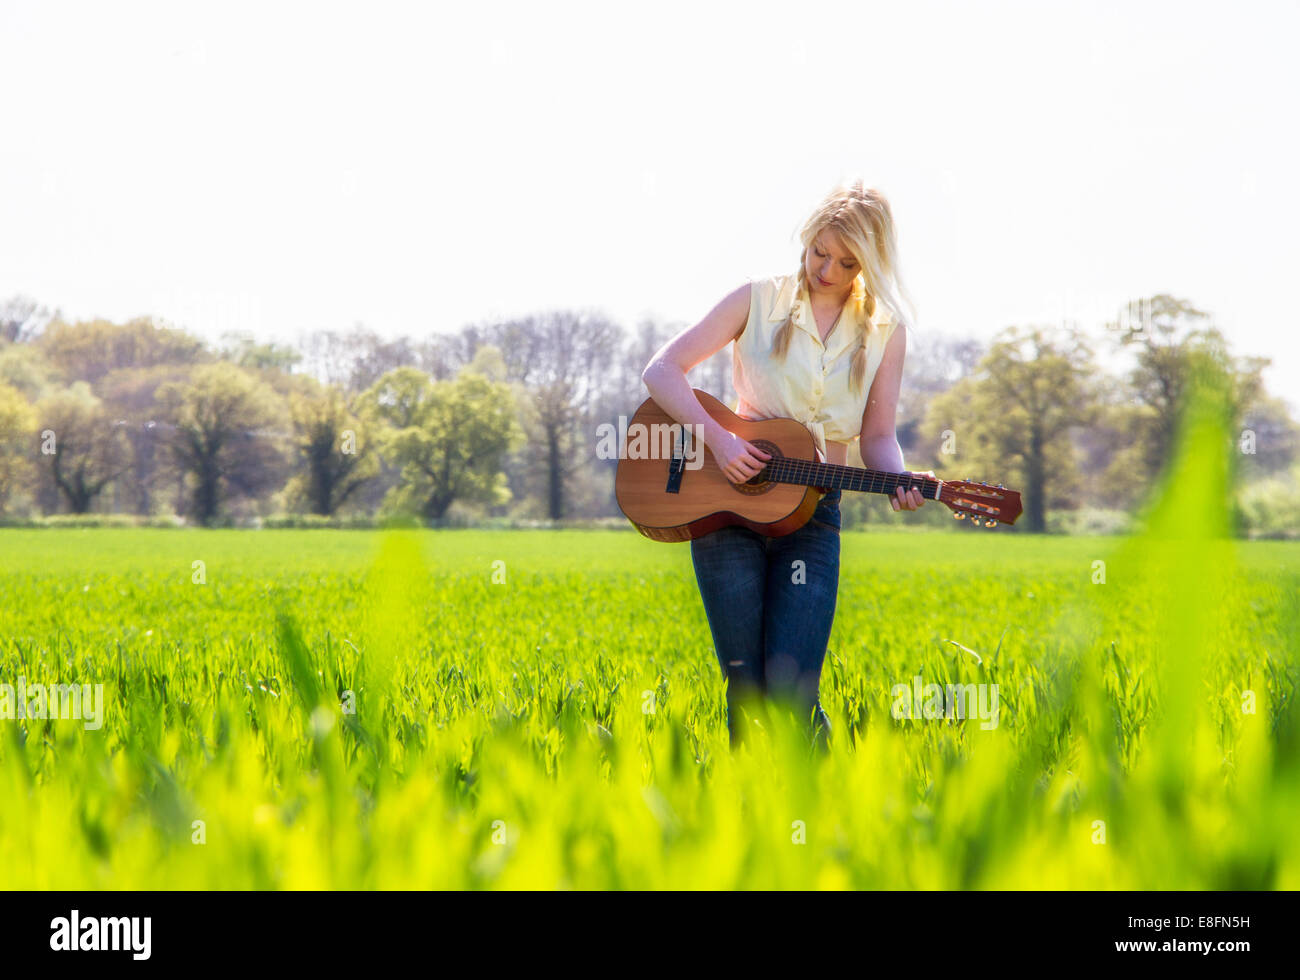 Female country singer in grass field - Stock Image